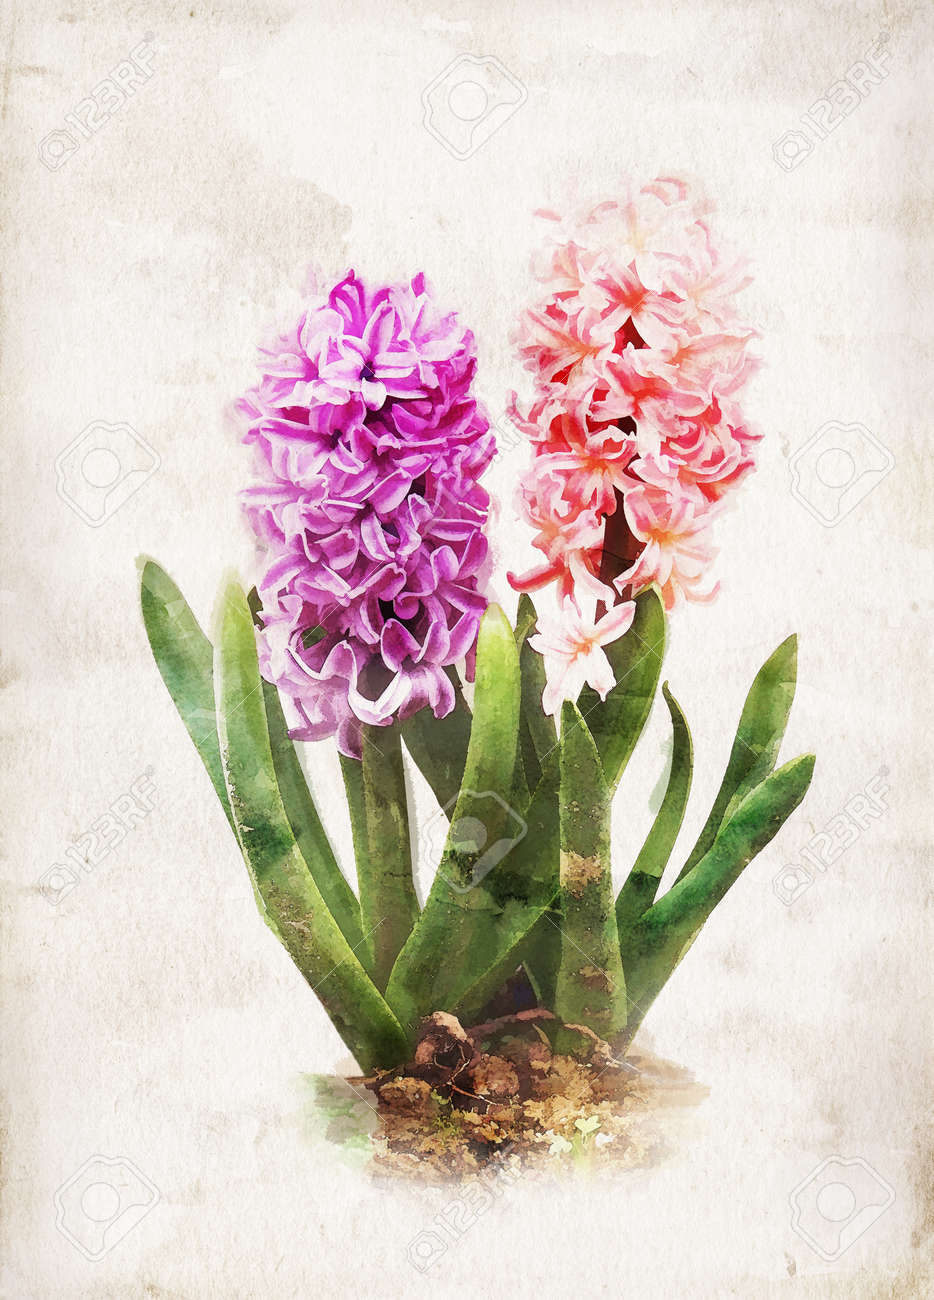 Illustration of watercolor hyacinth on a vintage background - 13642554